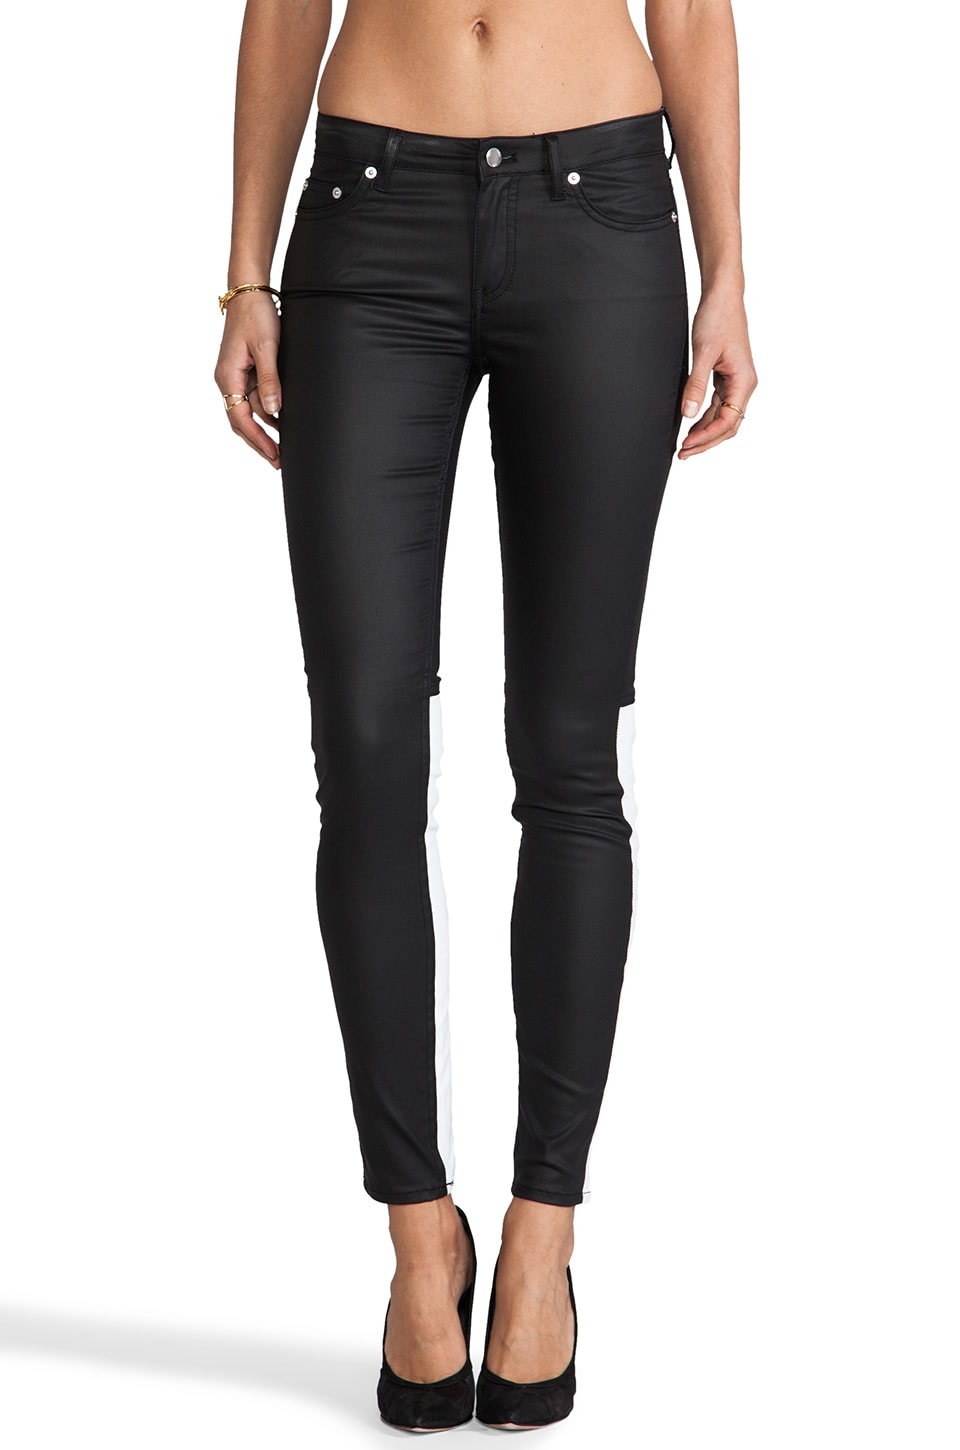 BLK DNM Jeans 26 in Empire Leg